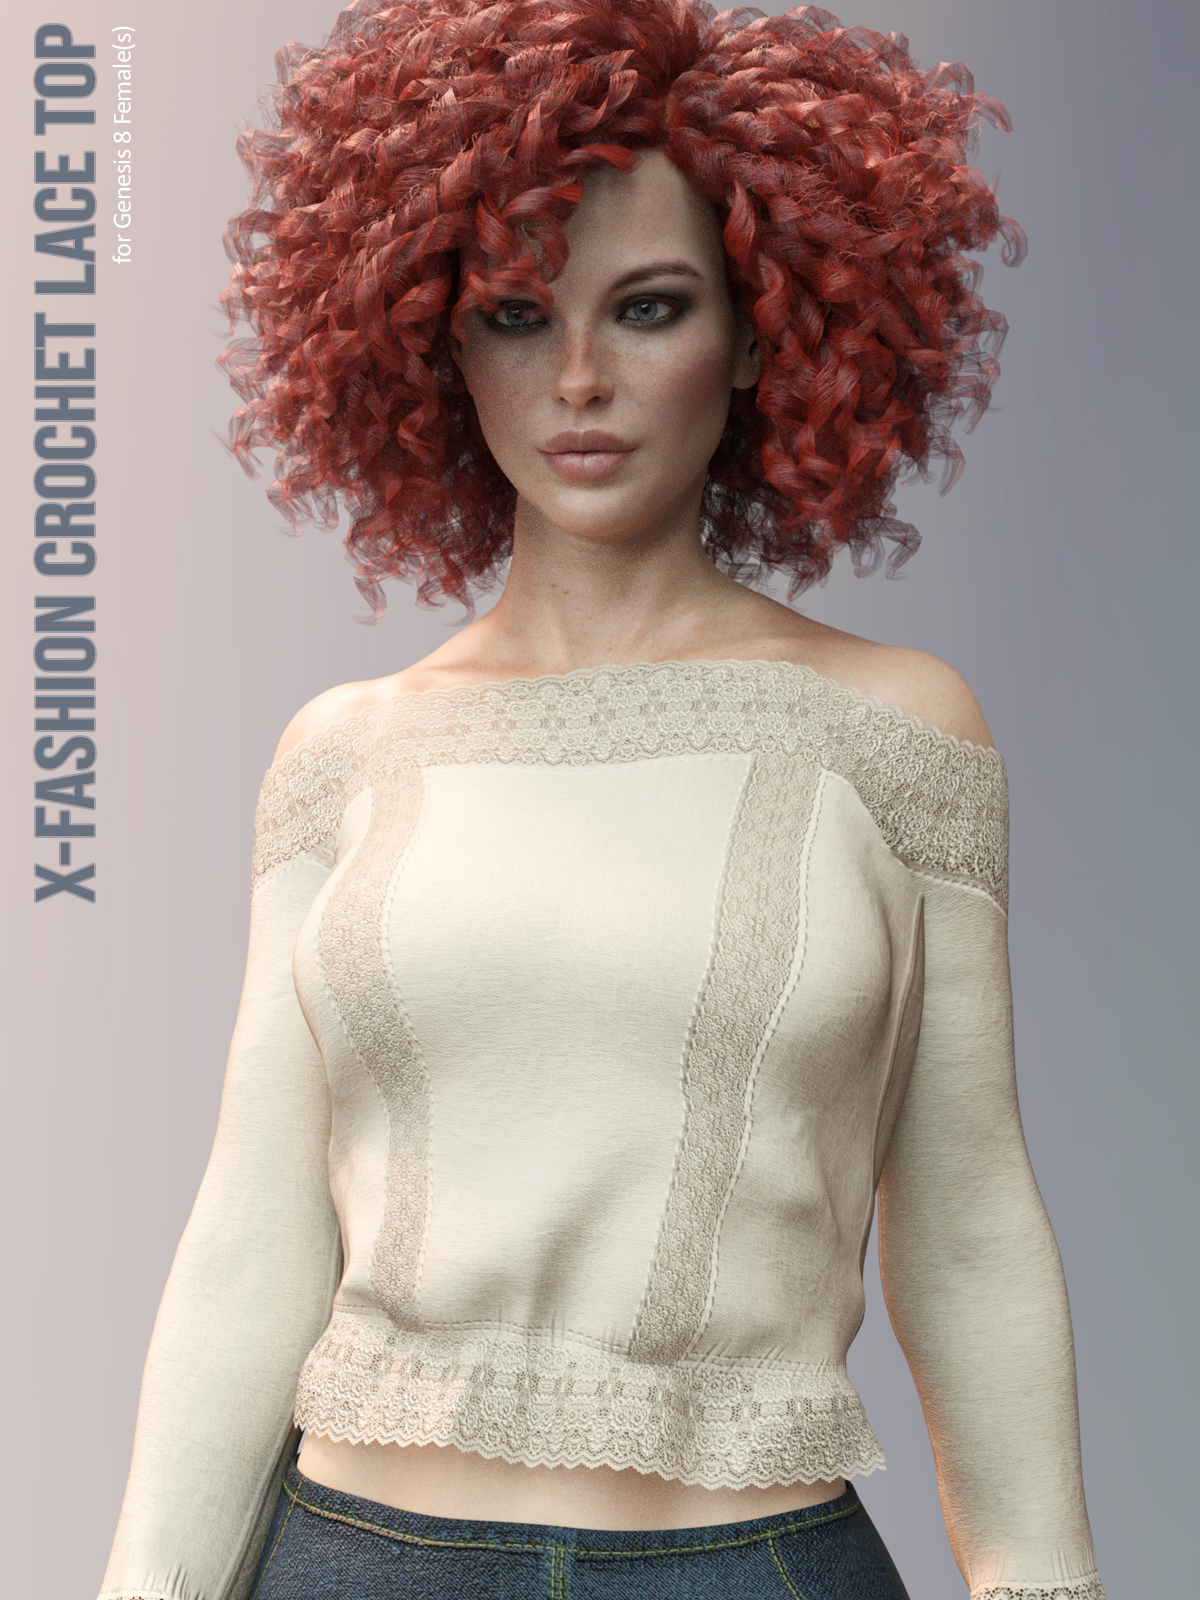 X-Fashion Crochet Lace Top for Genesis 8 Females